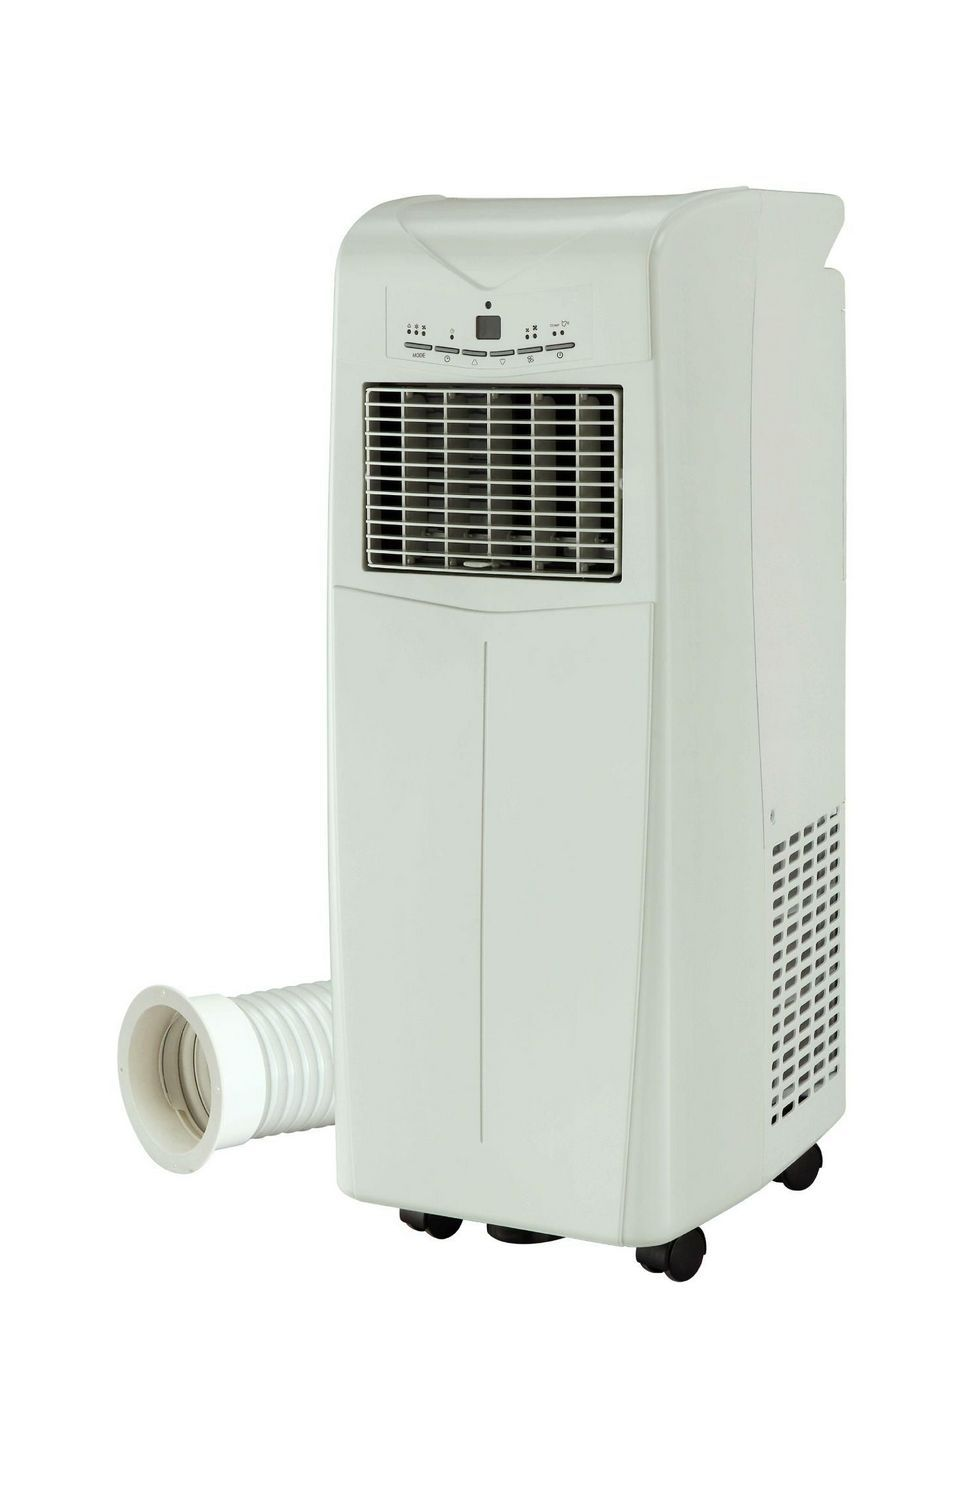 The Sharp Air Portabale Conditioner Unit With Tube Portable Air Conditioning Room Air Conditioner Portable Room Air Conditioner